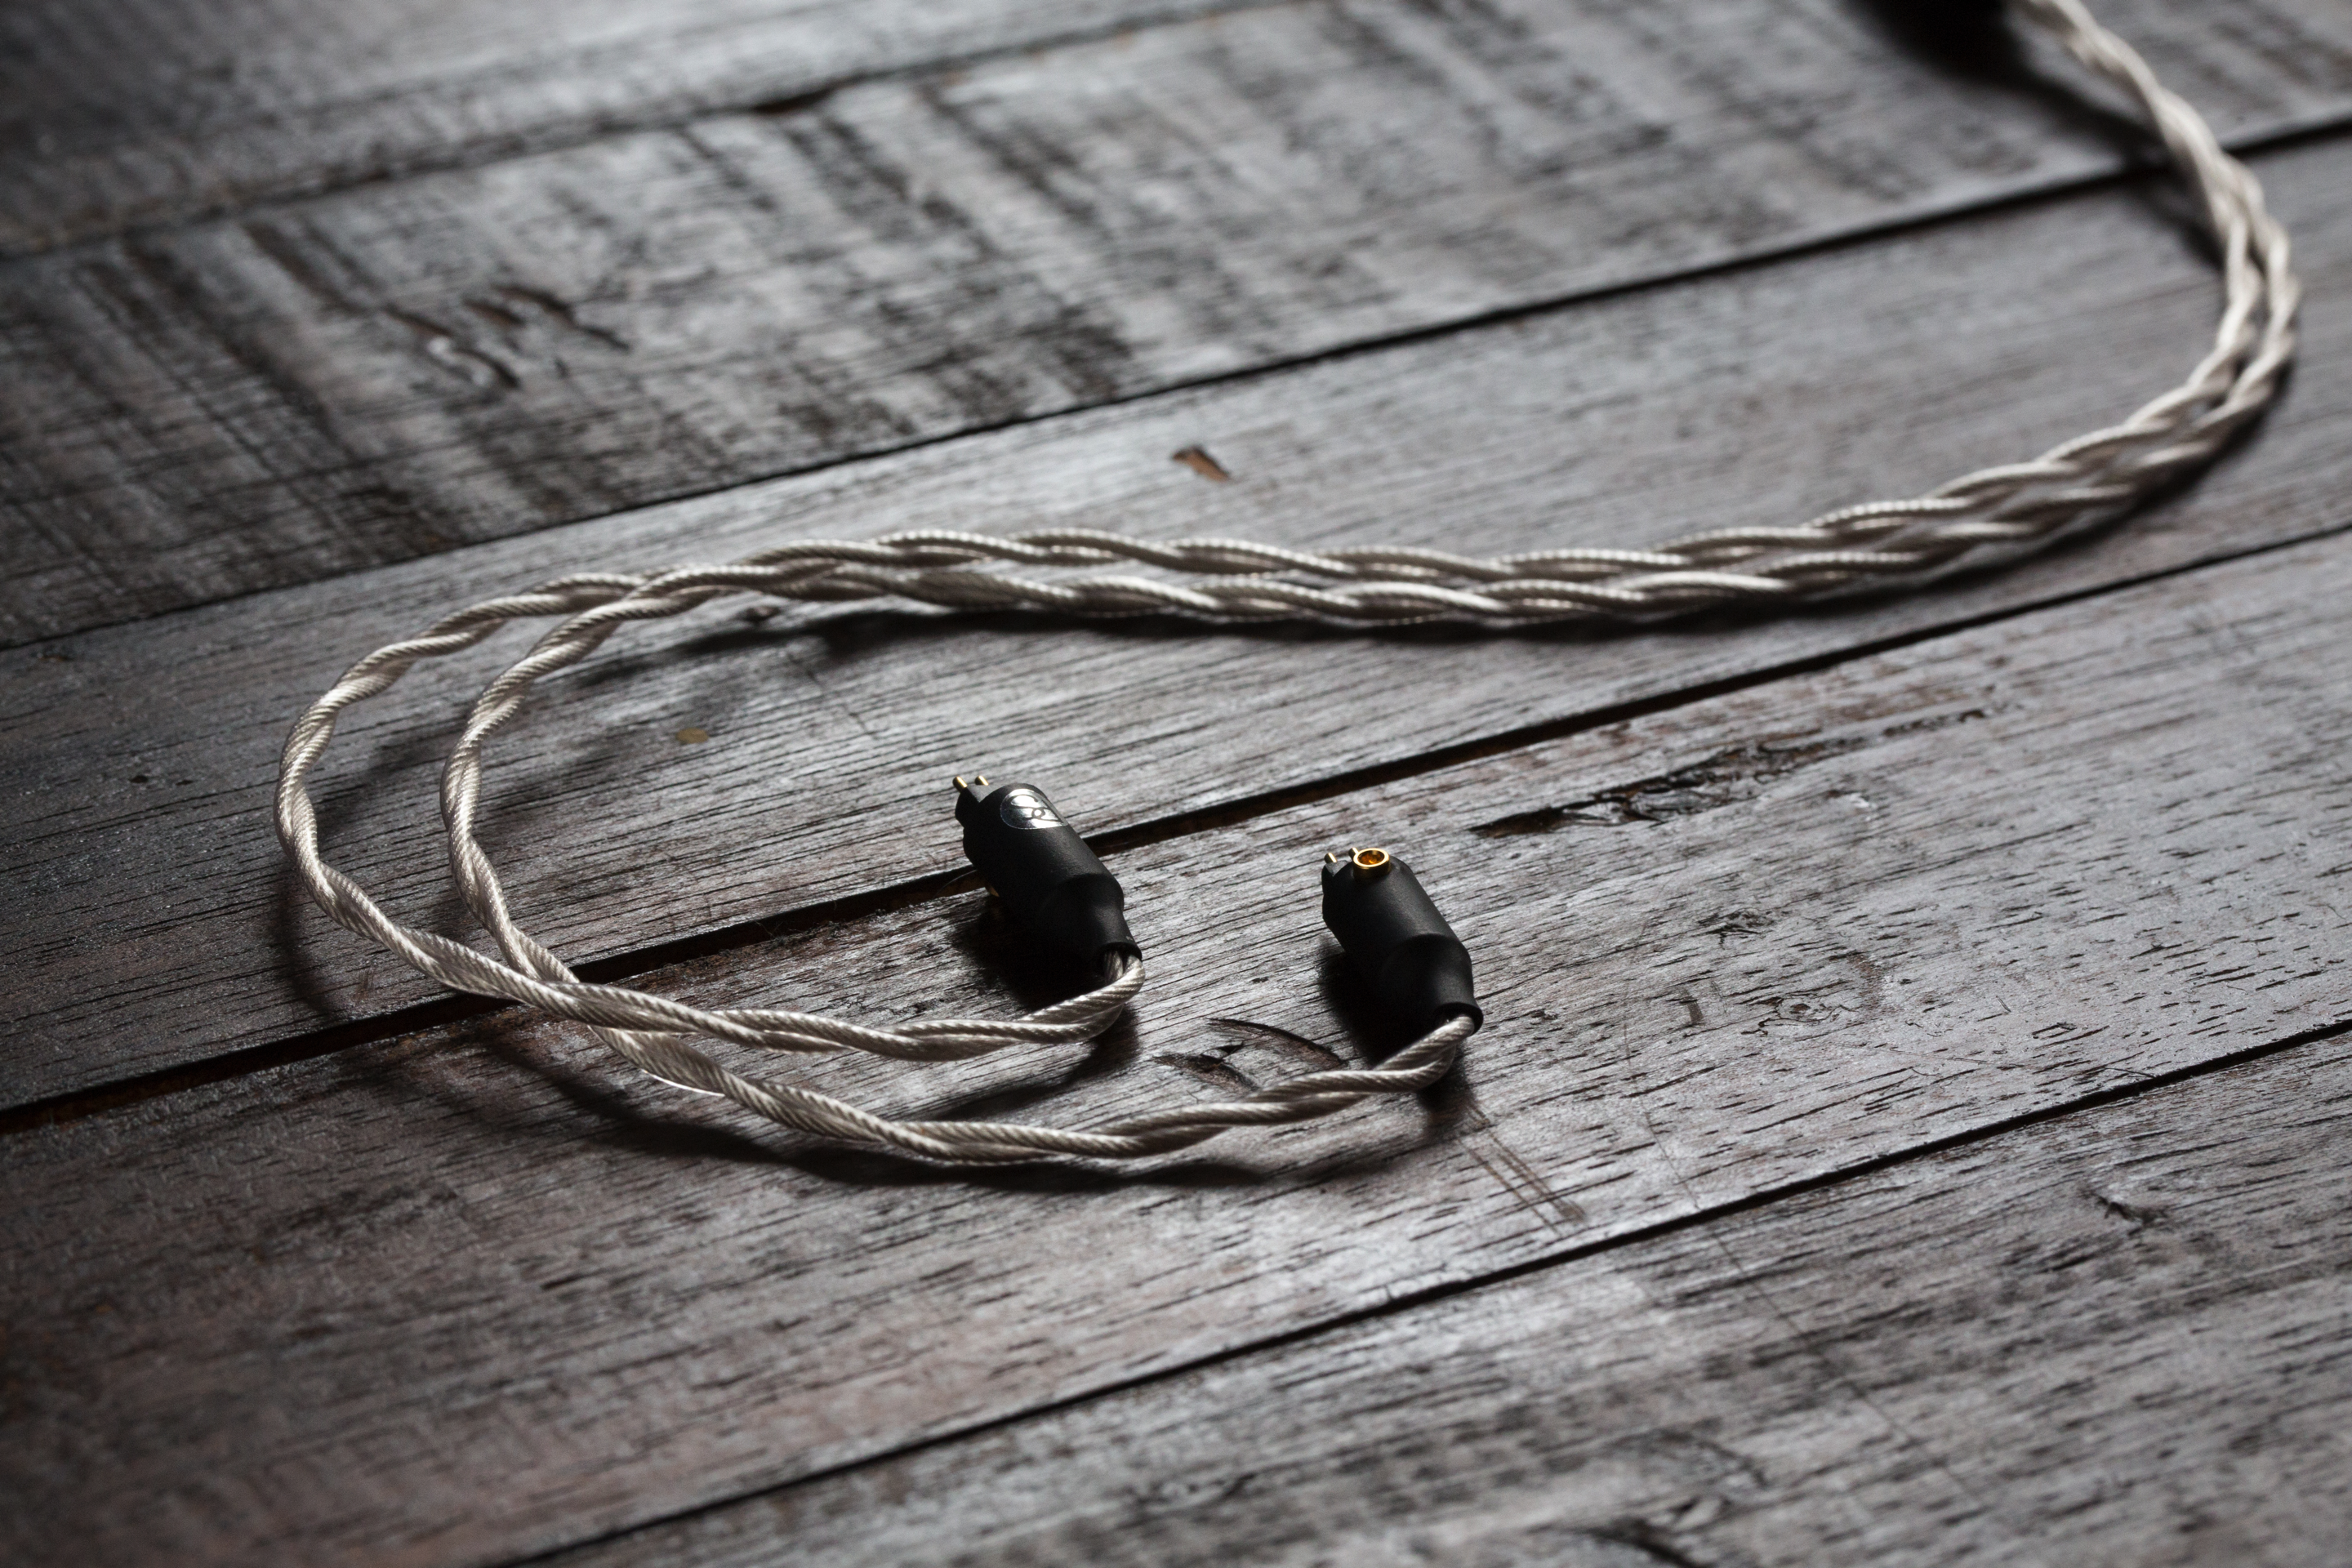 plusSound Exo Series Cable | Reviews | Headphone Reviews and ...